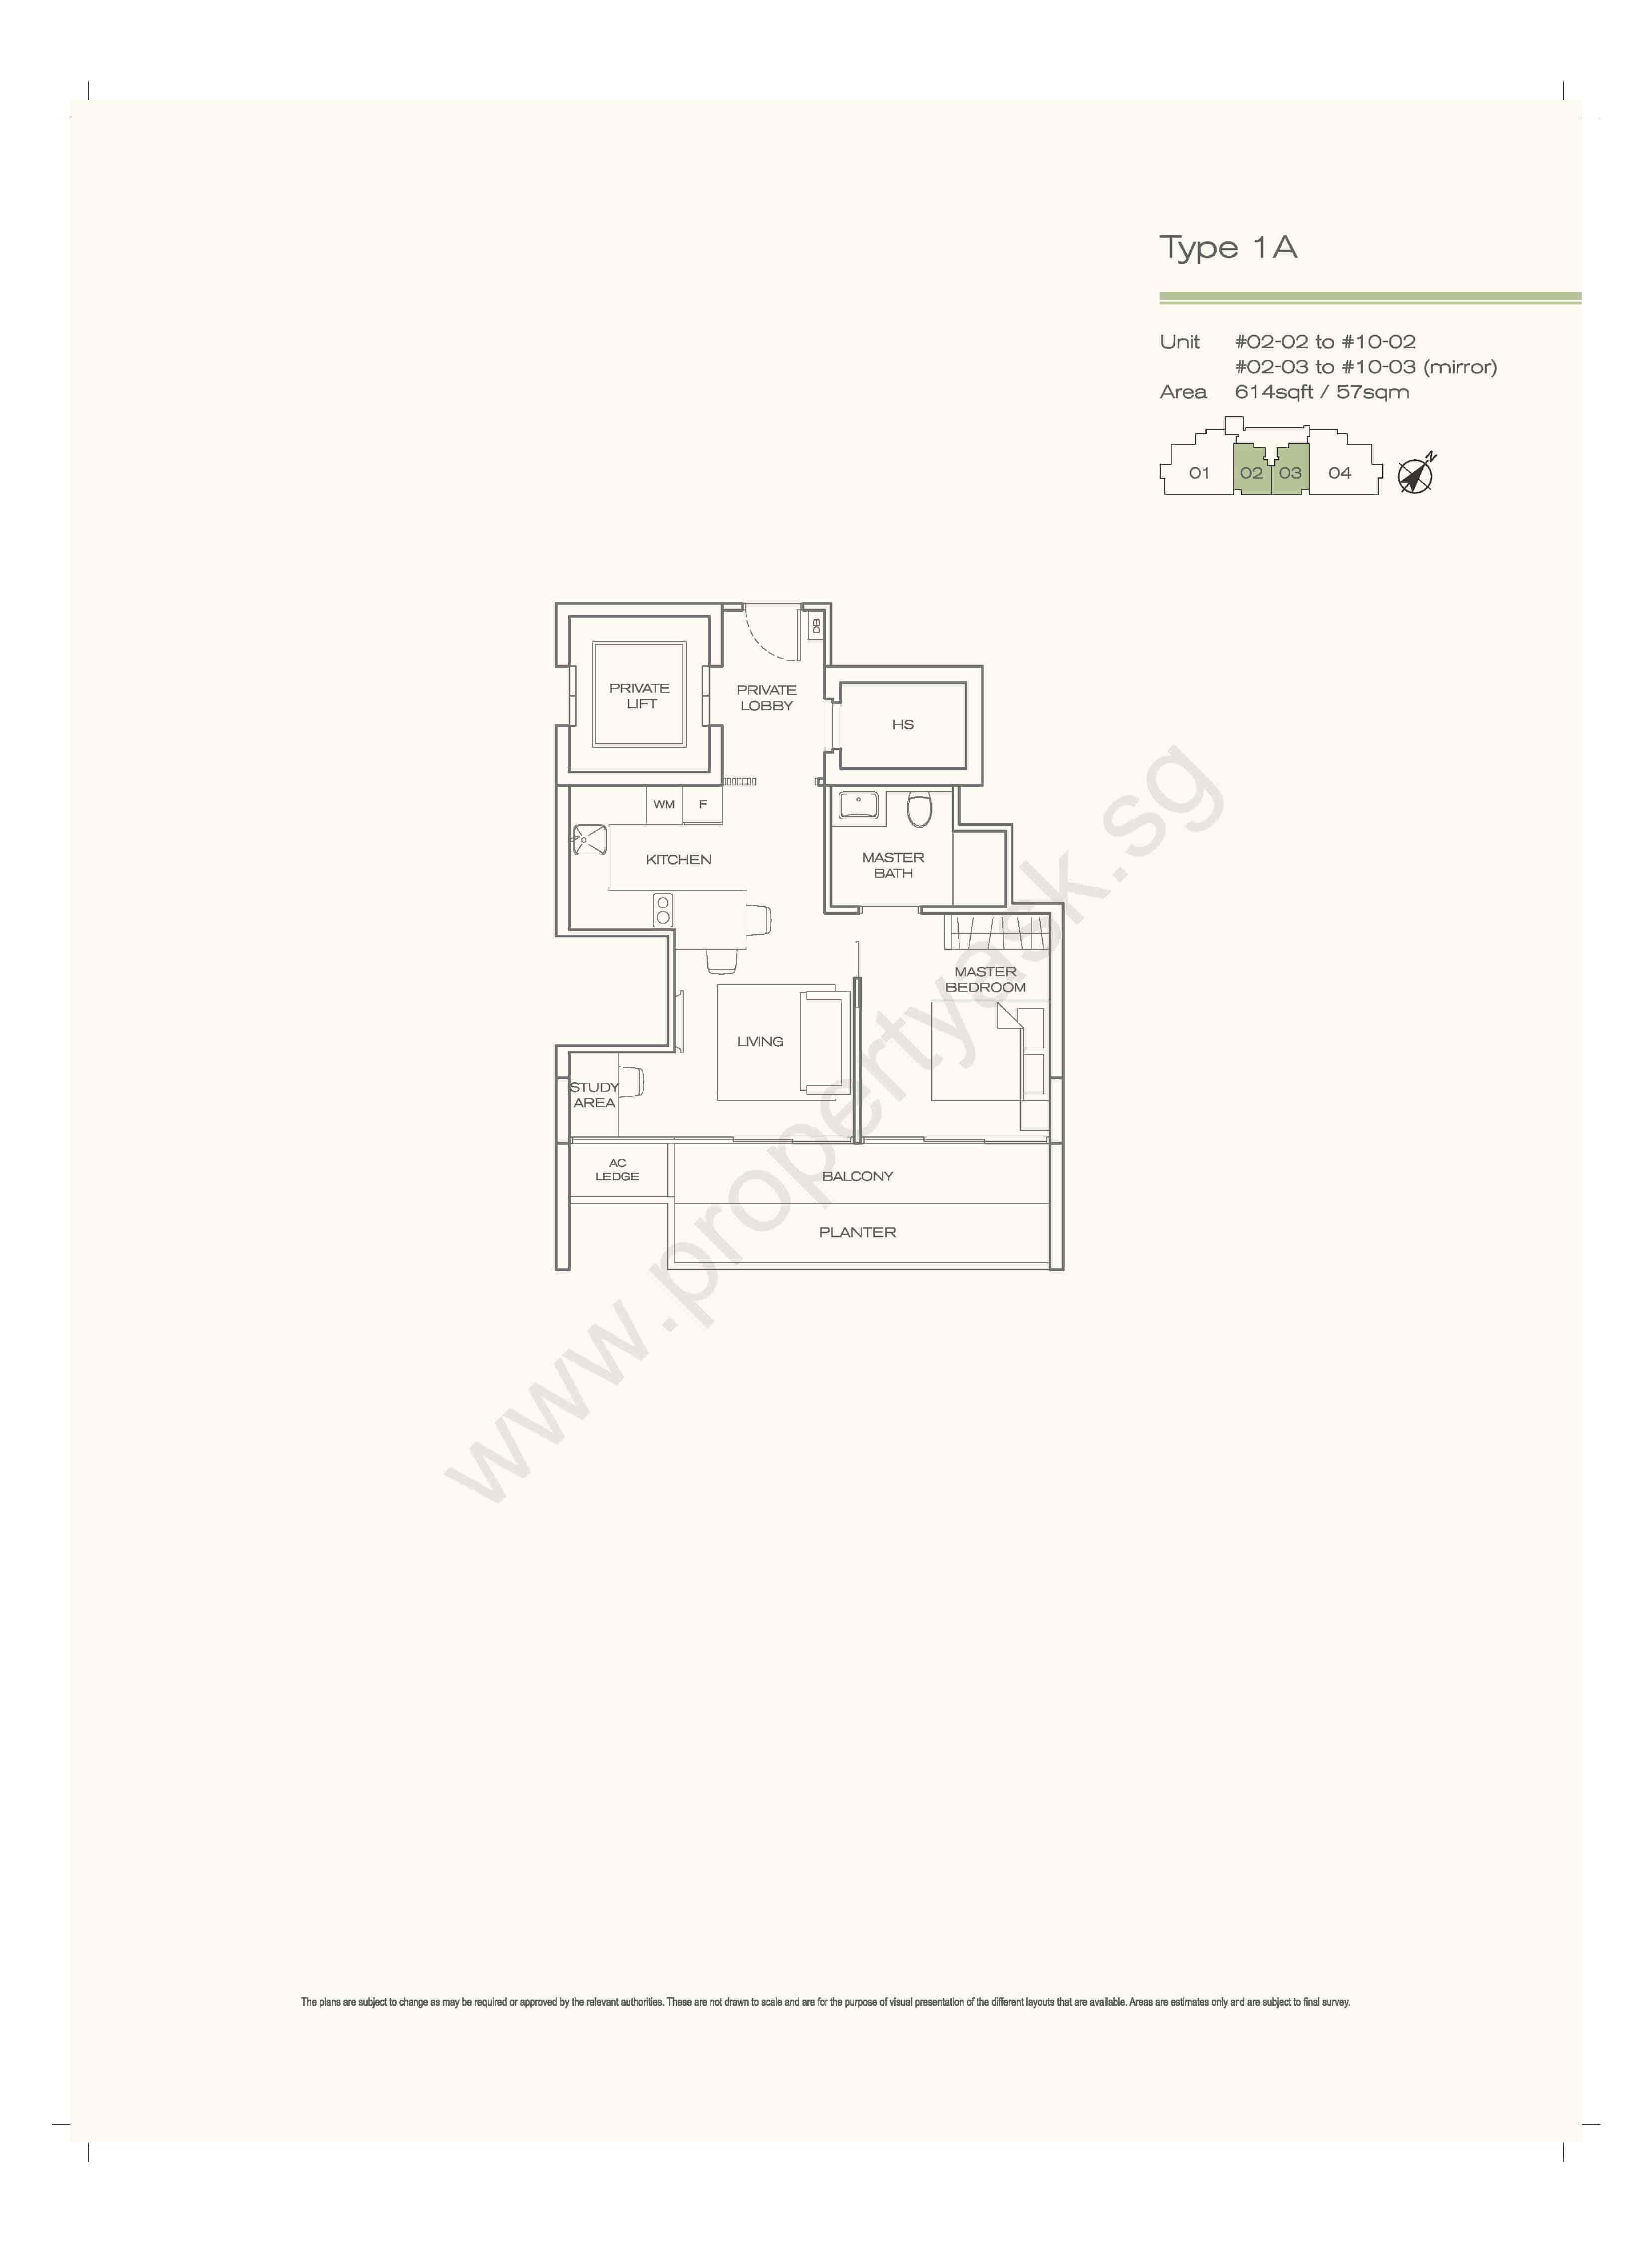 Type 1A - 1 Bedroom Private Lift